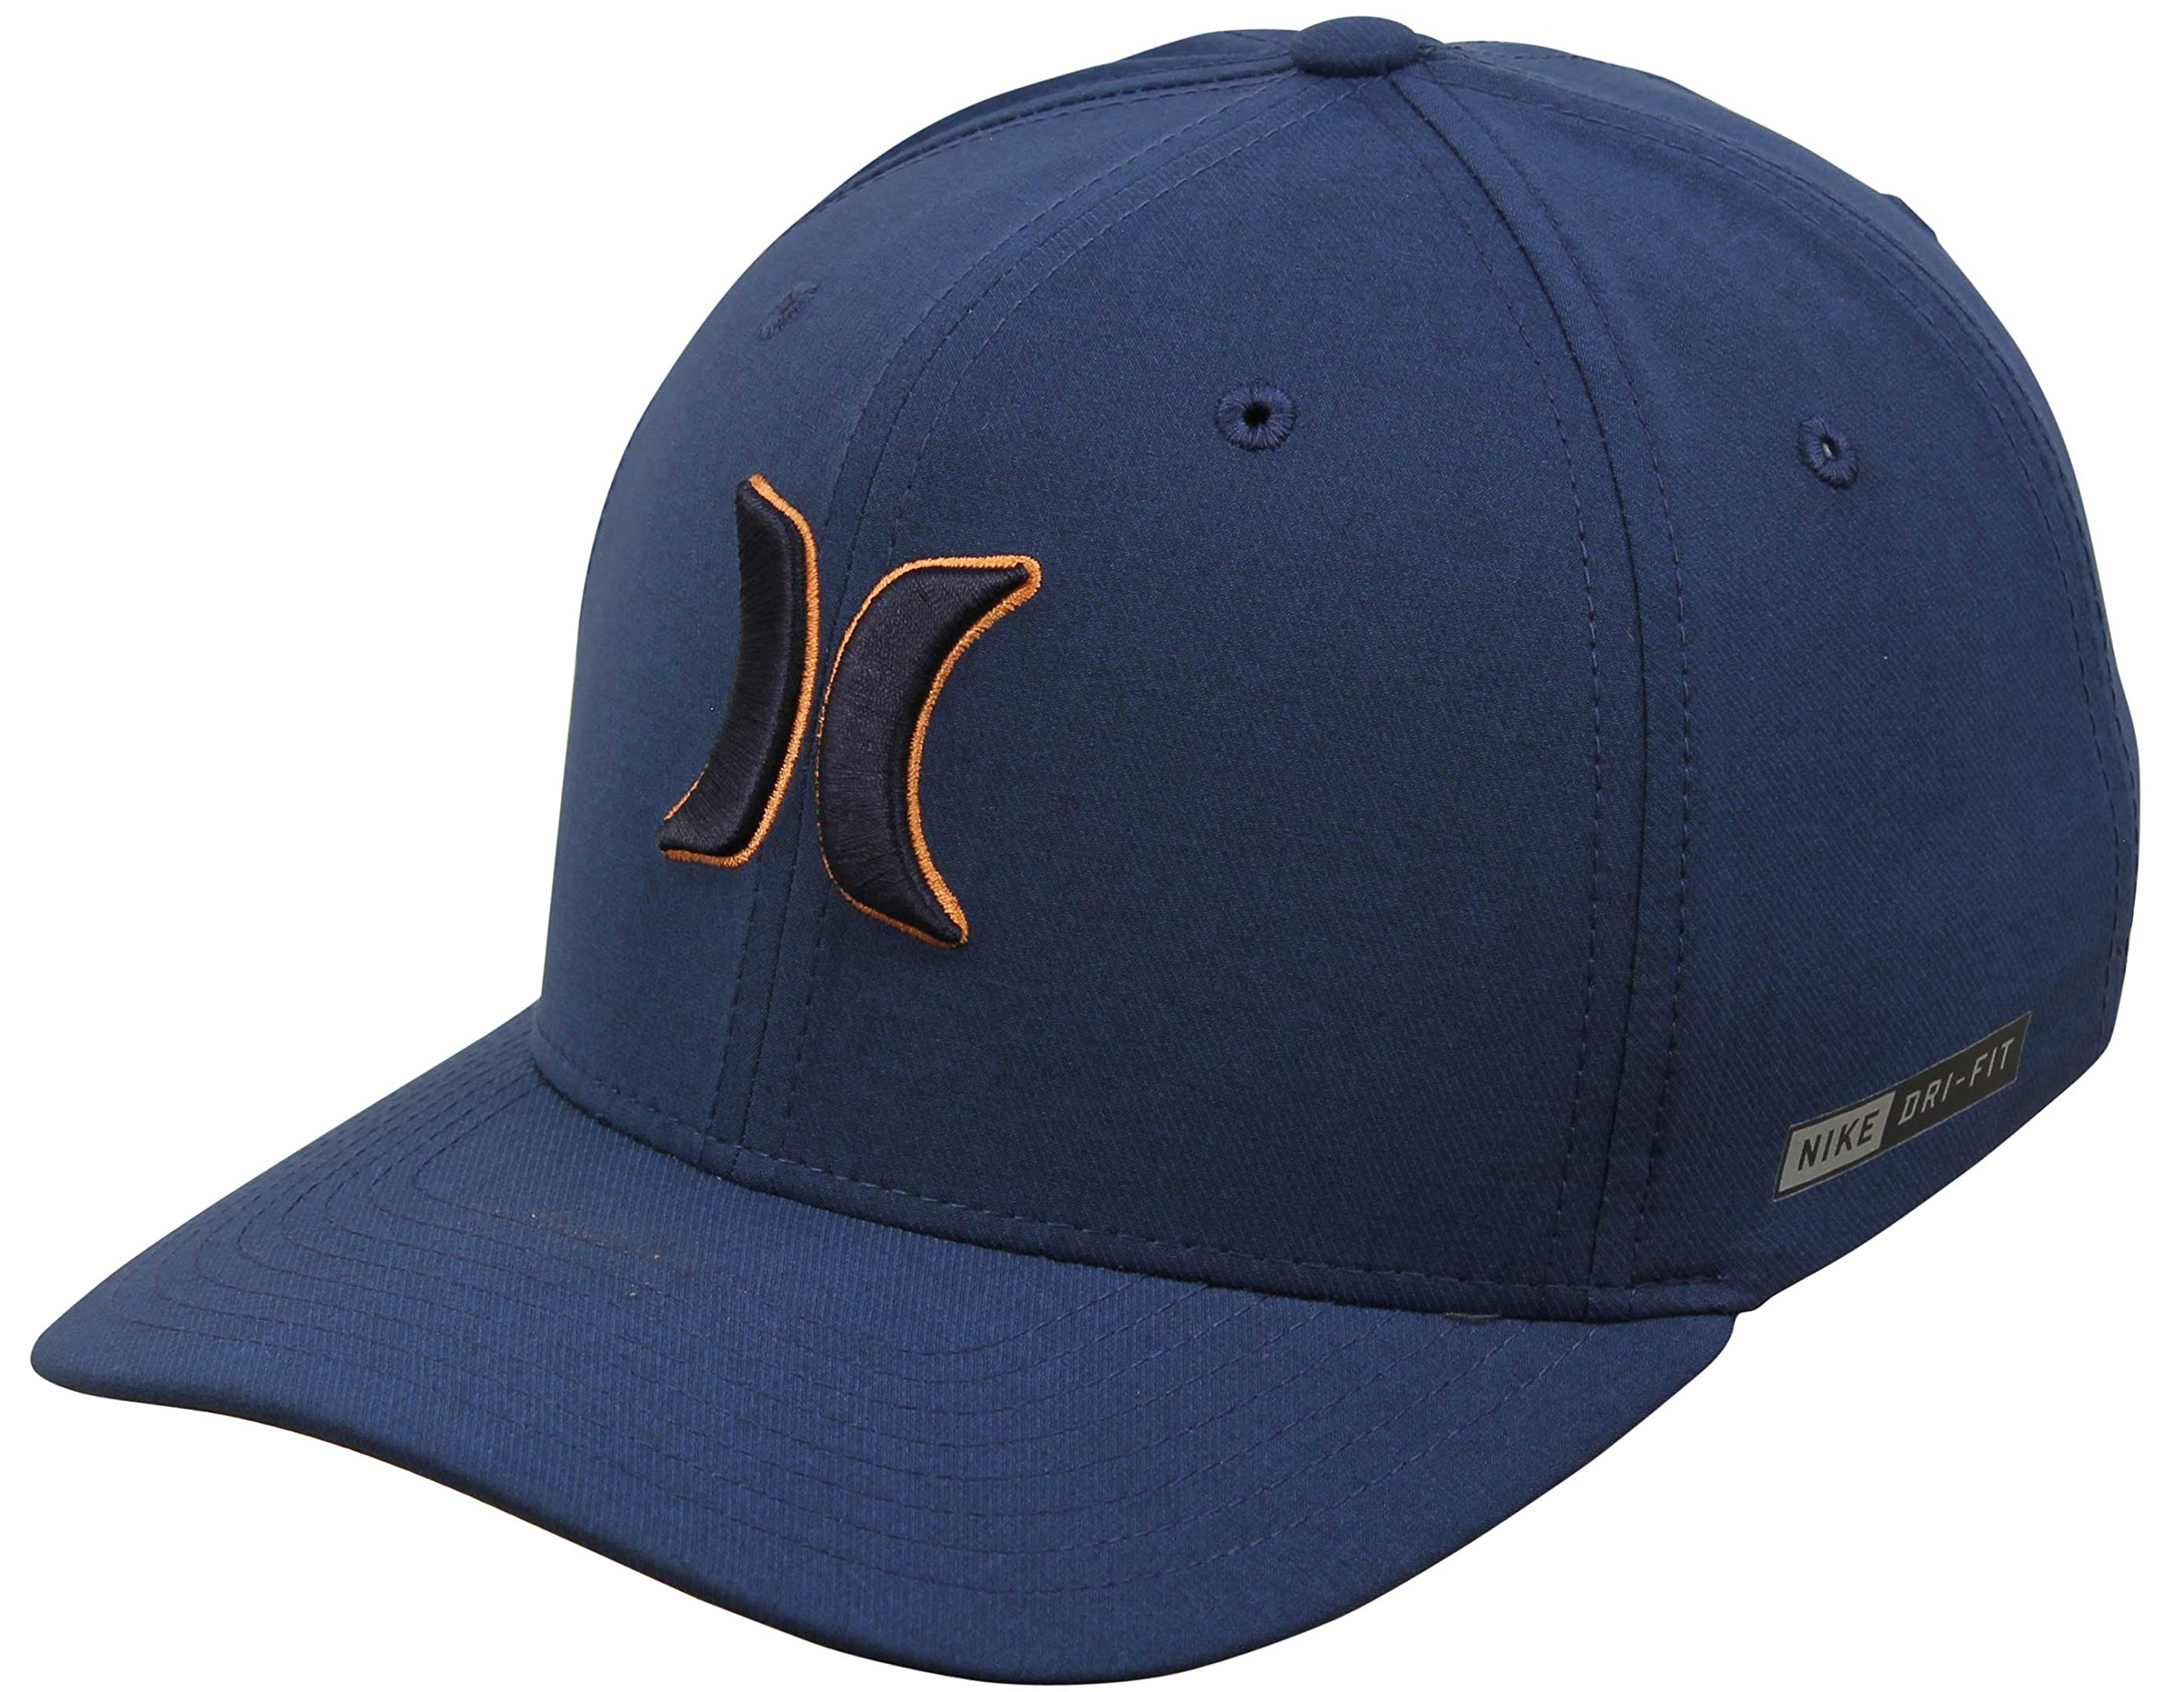 buy online fdcc7 7e294 Galleon - Hurley Dri-Fit Heather Hat - Obsidian - S M